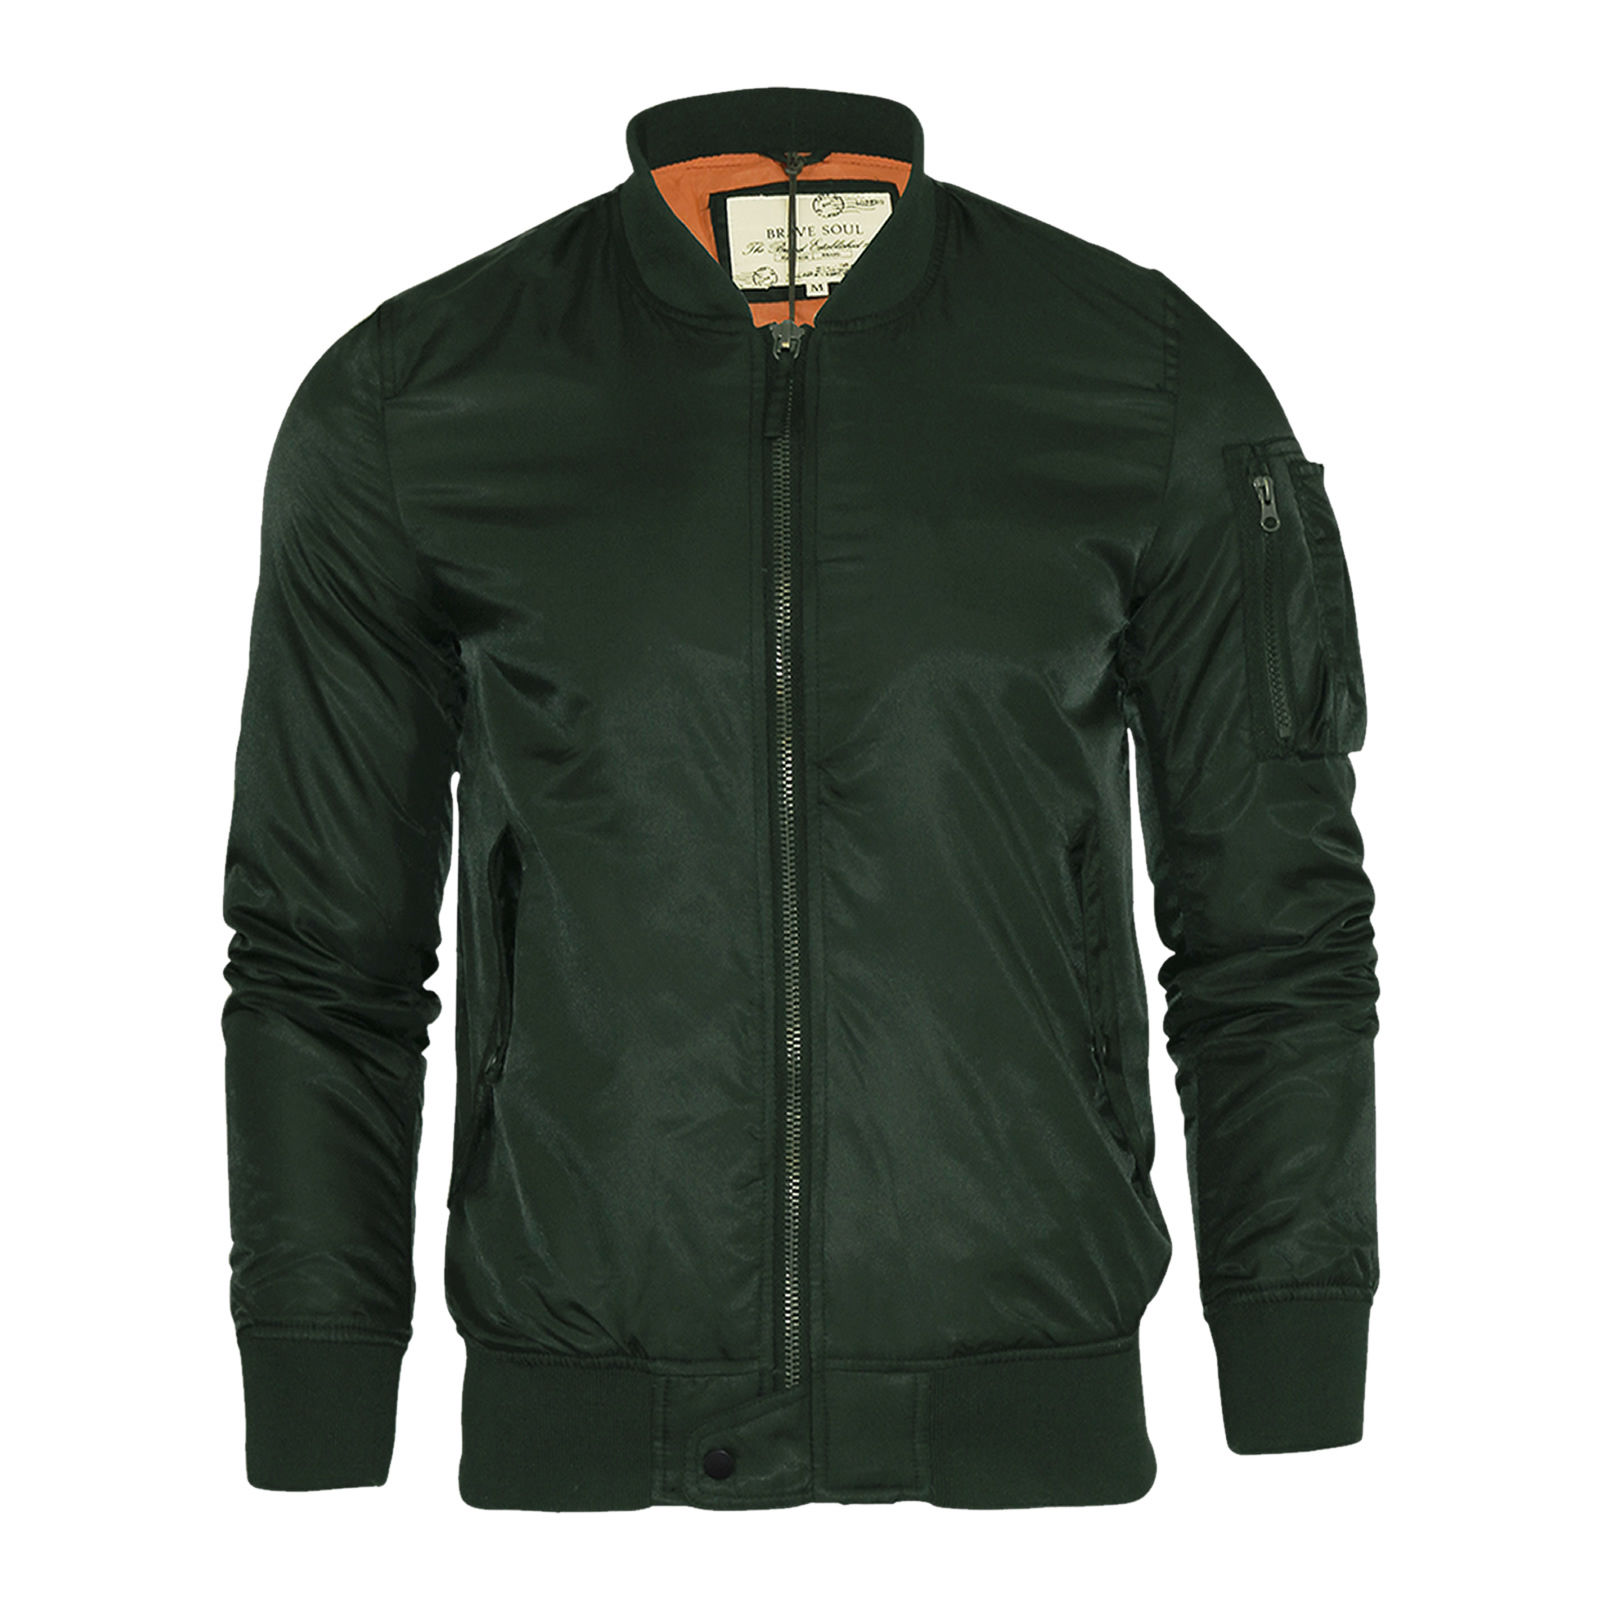 Free shipping and returns on Men's Lightweight Coats & Jackets at roeprocjfc.ga